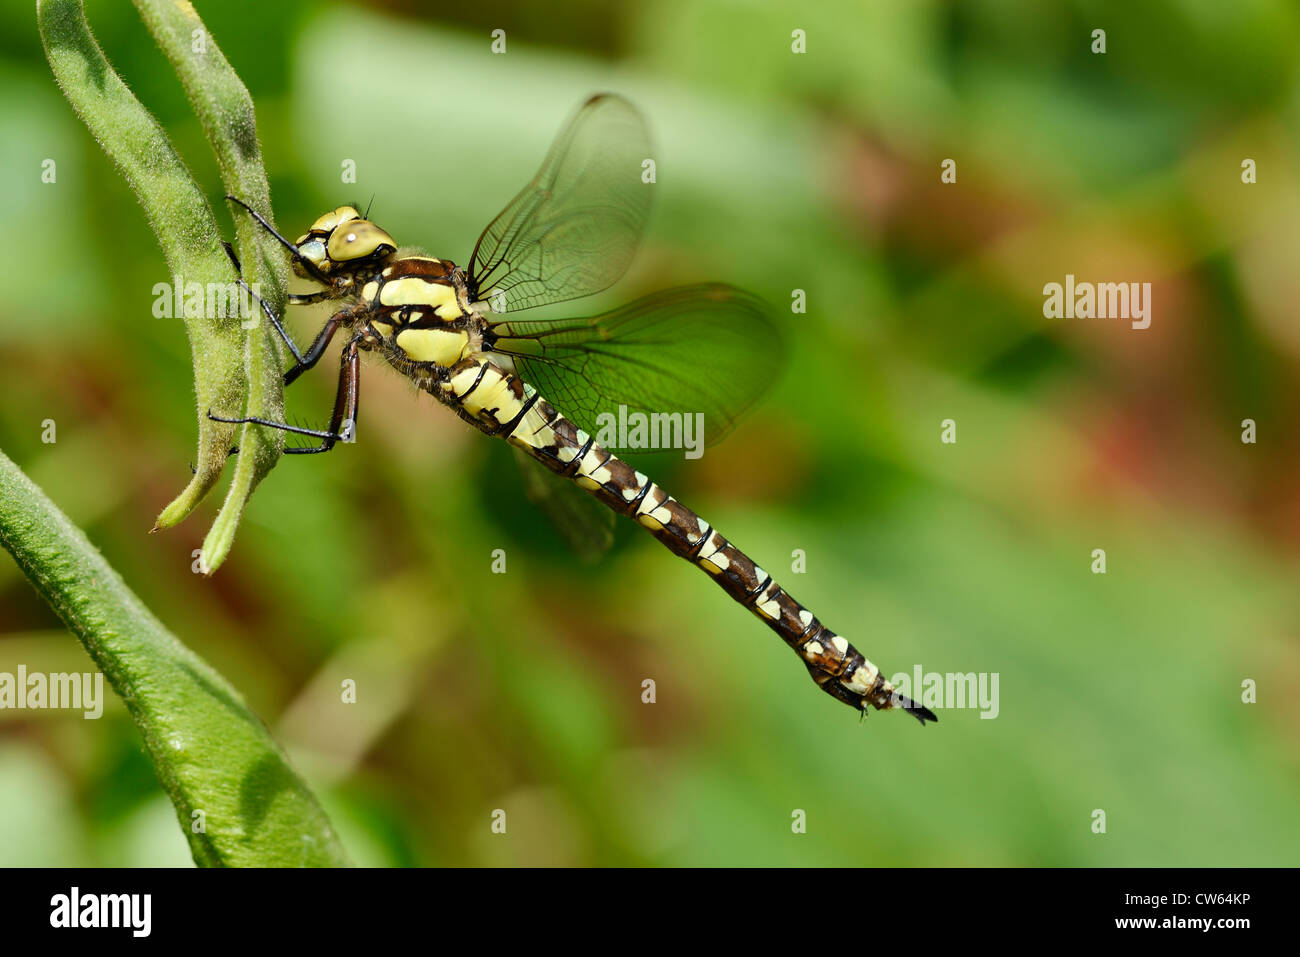 Female Southern Hawker dragonfly Aeshna cyanea - Stock Image